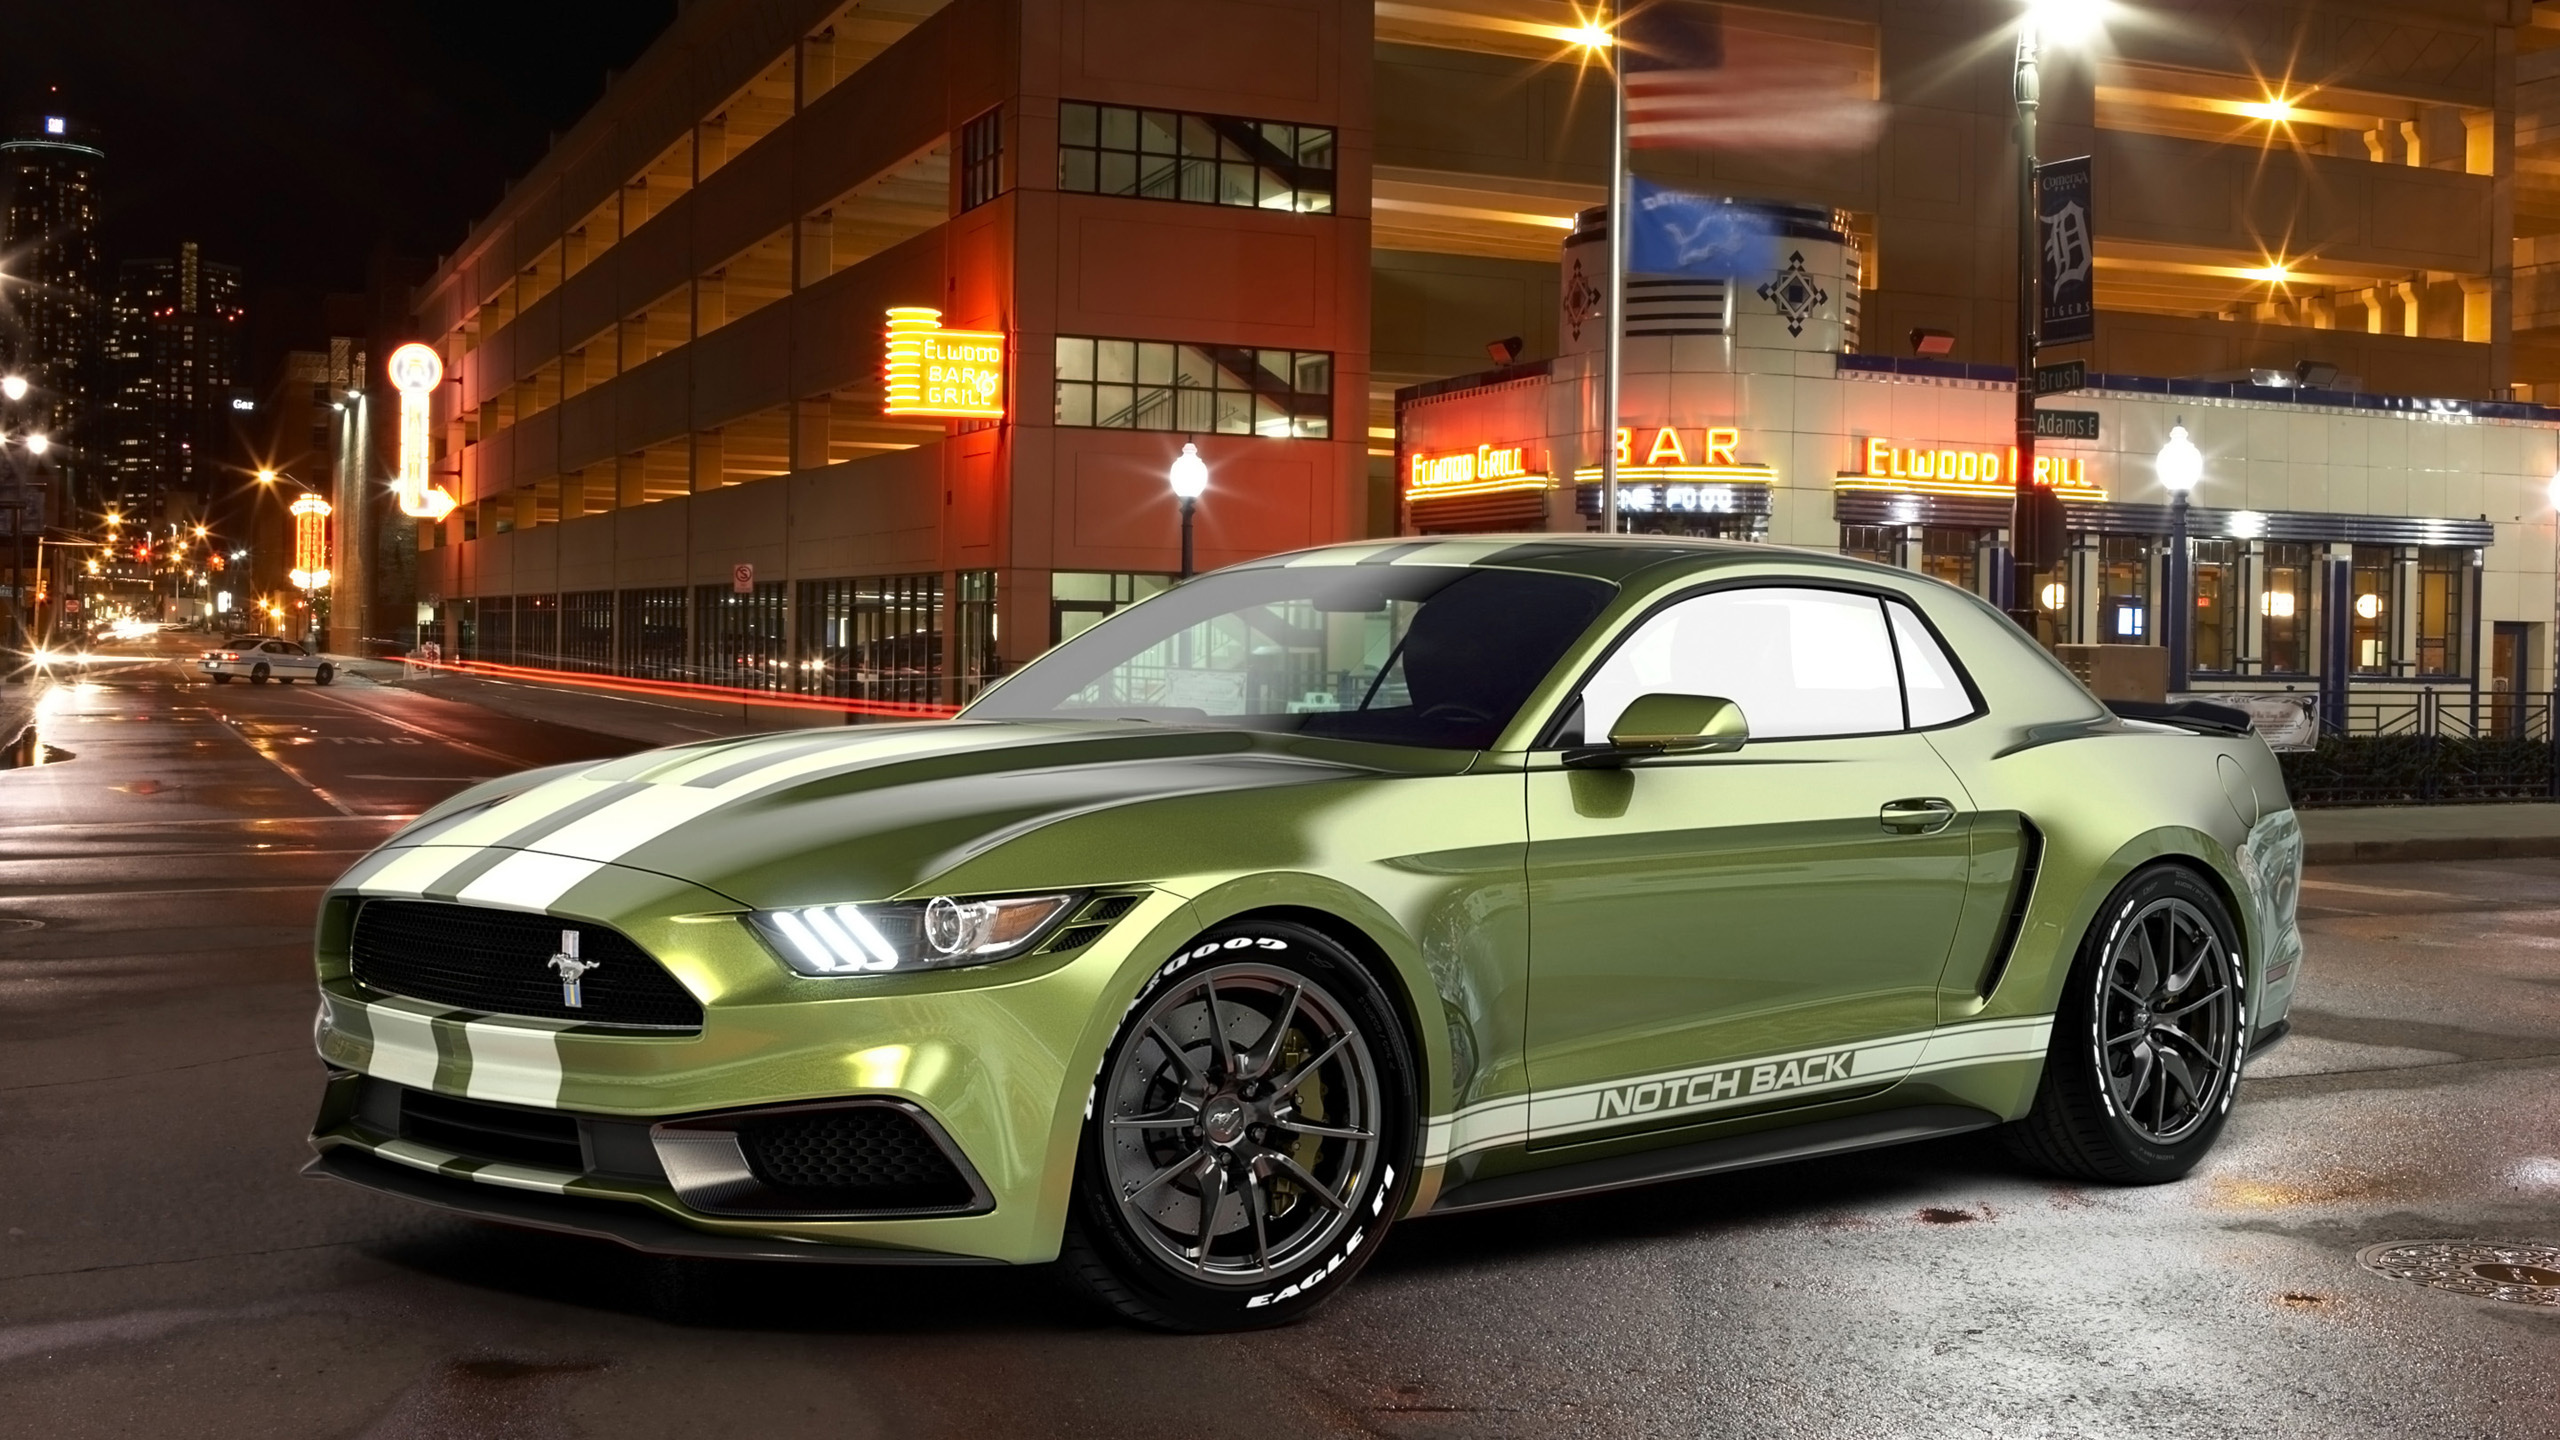 2017 Ford Mustang Notchback Design 3 Wallpaper Hd Car